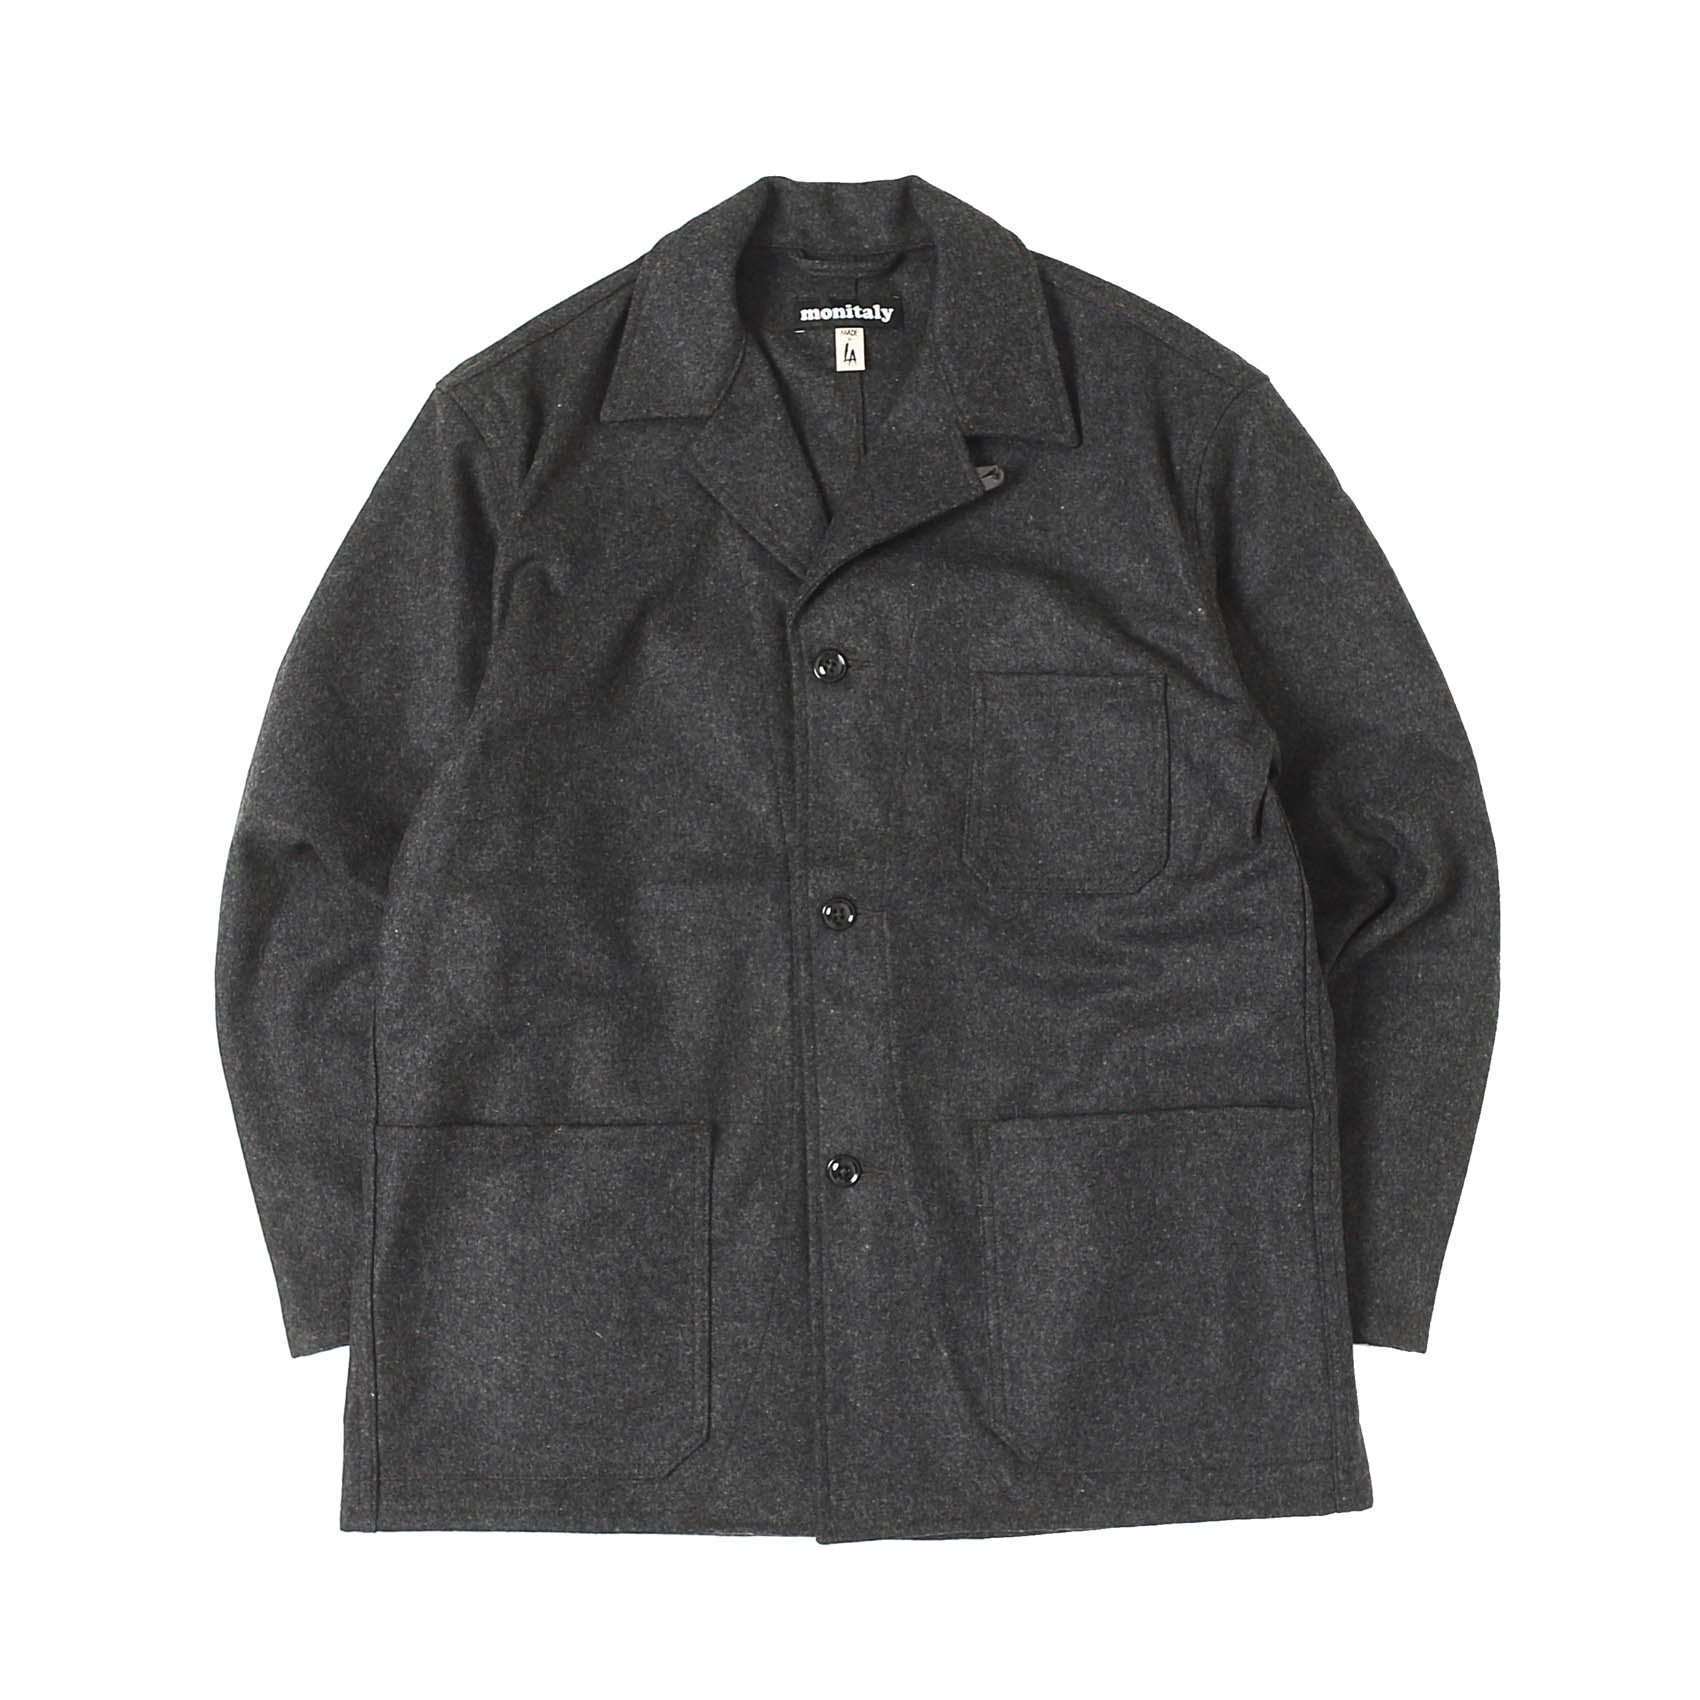 WOOL ITALIAN JAIL JACKET - CHARCOAL